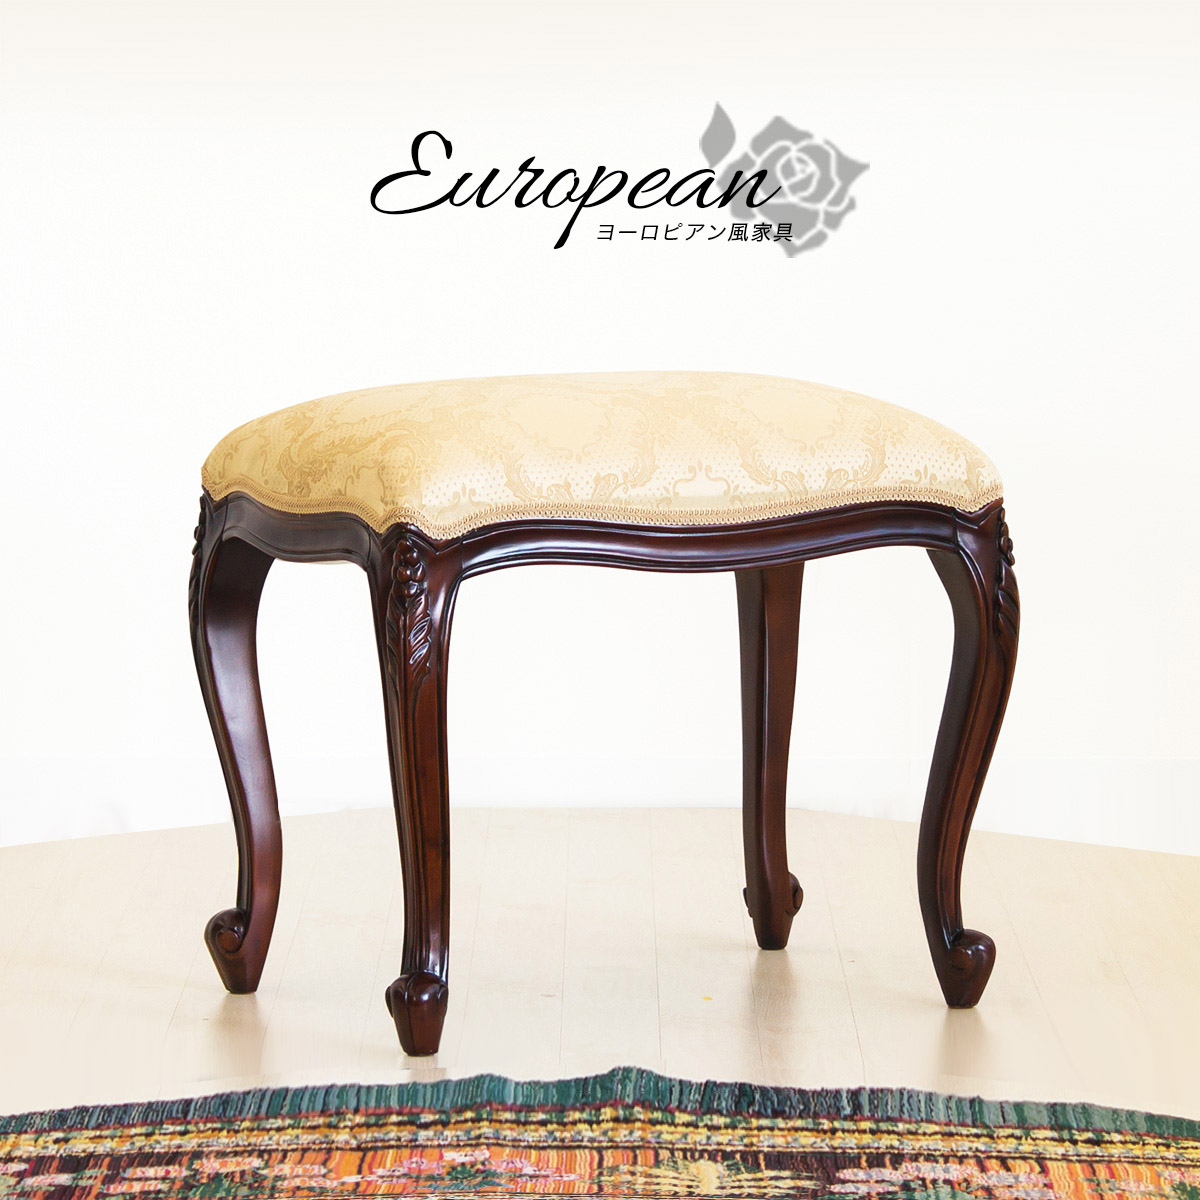 Prime Soundless And Stealthy Steps Stool European Design Brown Wooden Antique Like Elegant Chair Classical Music Chair Chair Italy Furniture Style Brown Andrewgaddart Wooden Chair Designs For Living Room Andrewgaddartcom